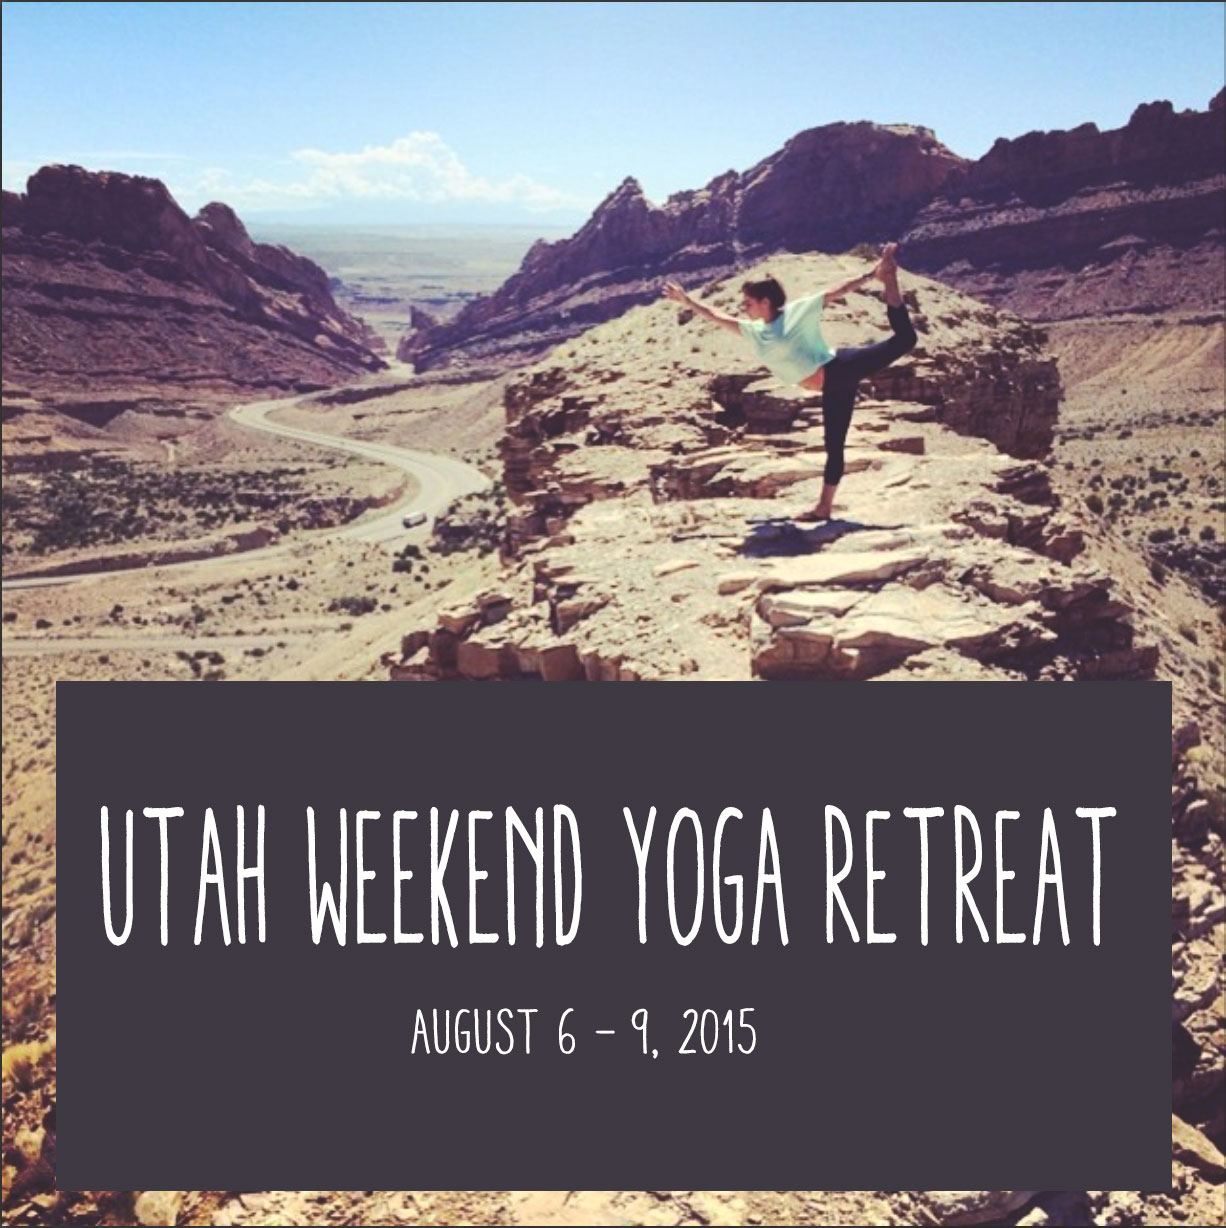 Pin now and join us in Utah!